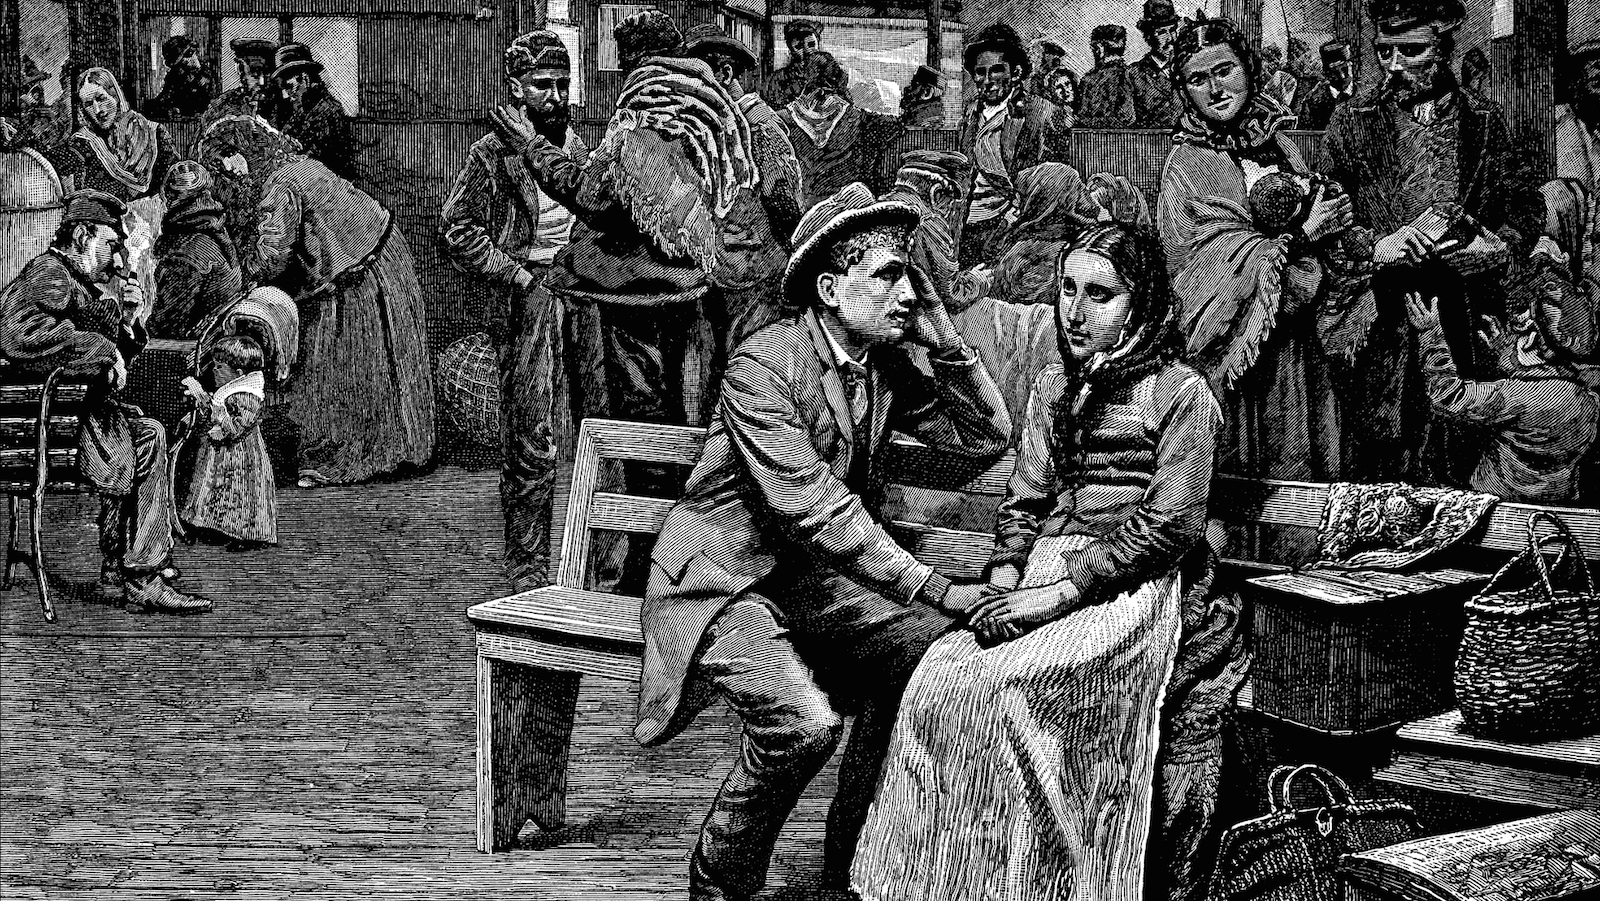 irish immigration in america Irish immigration to canada the irish began immigrating to north america in the 1820s, when the lack of jobs and poverty forced them to seek better opportunities elsewhere after the end of the major european wars when the europeans could finally stop depending on the irish for food during war.